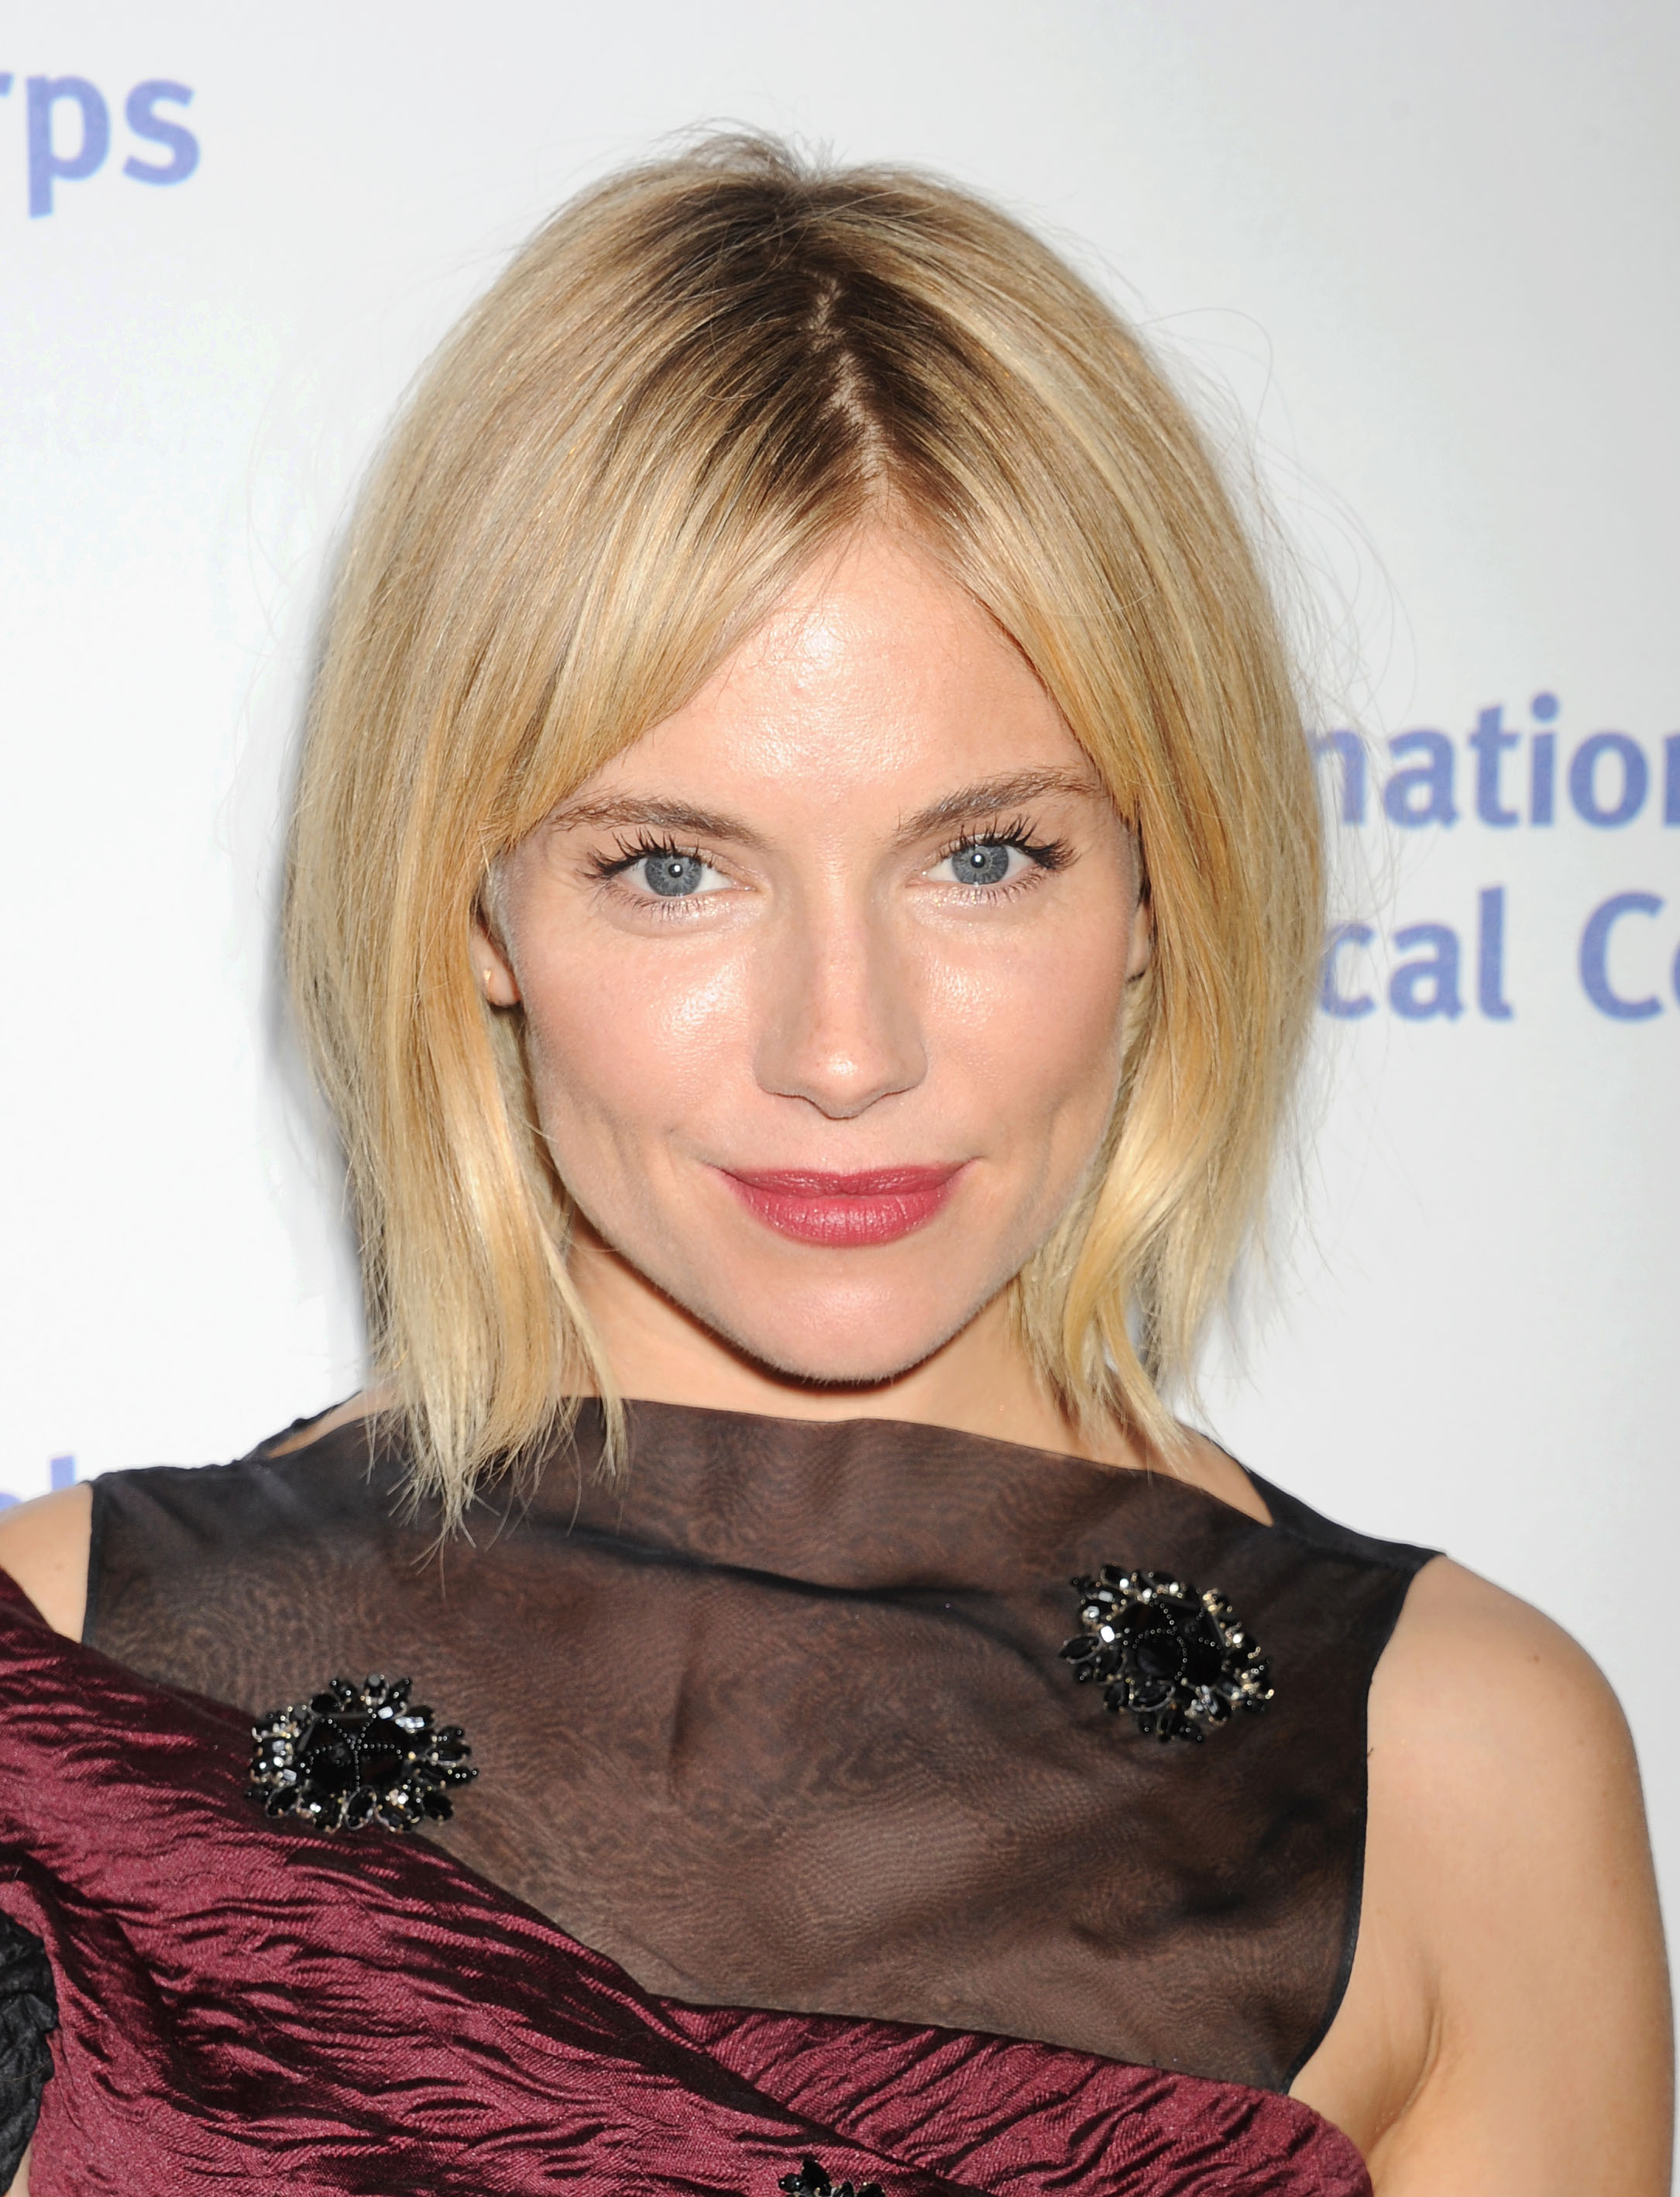 De beauty & hair secrets van Sienna Miller